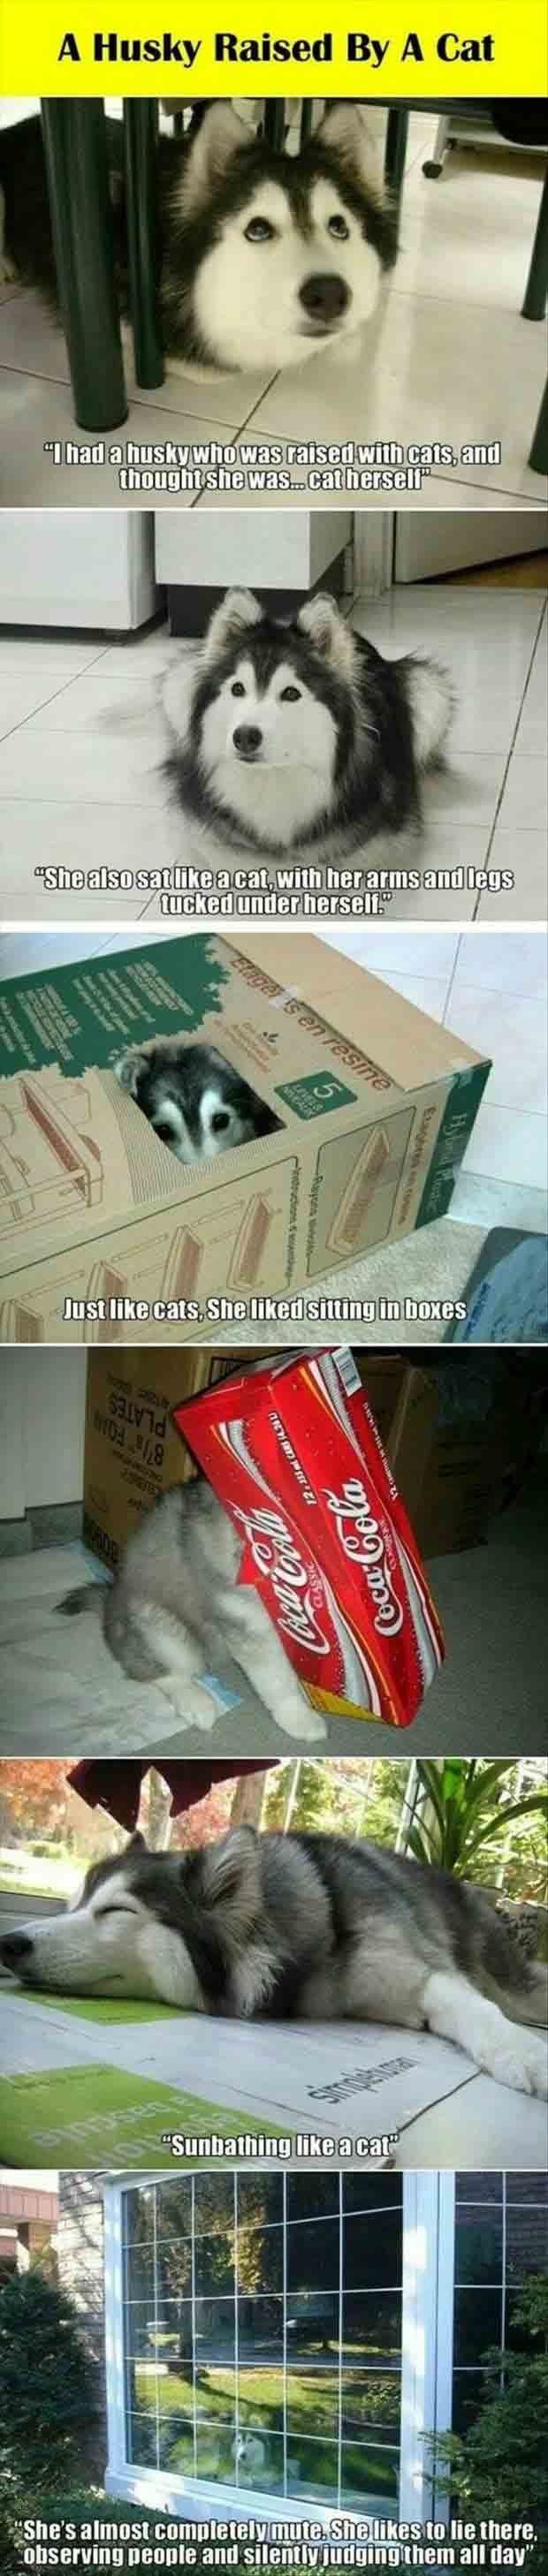 Fun box funny picture funny pic pic of fun funny image - Funny Pictures About Dog Raised By Cats Oh And Cool Pics About Dog Raised By Cats Also Dog Raised By Cats Photos